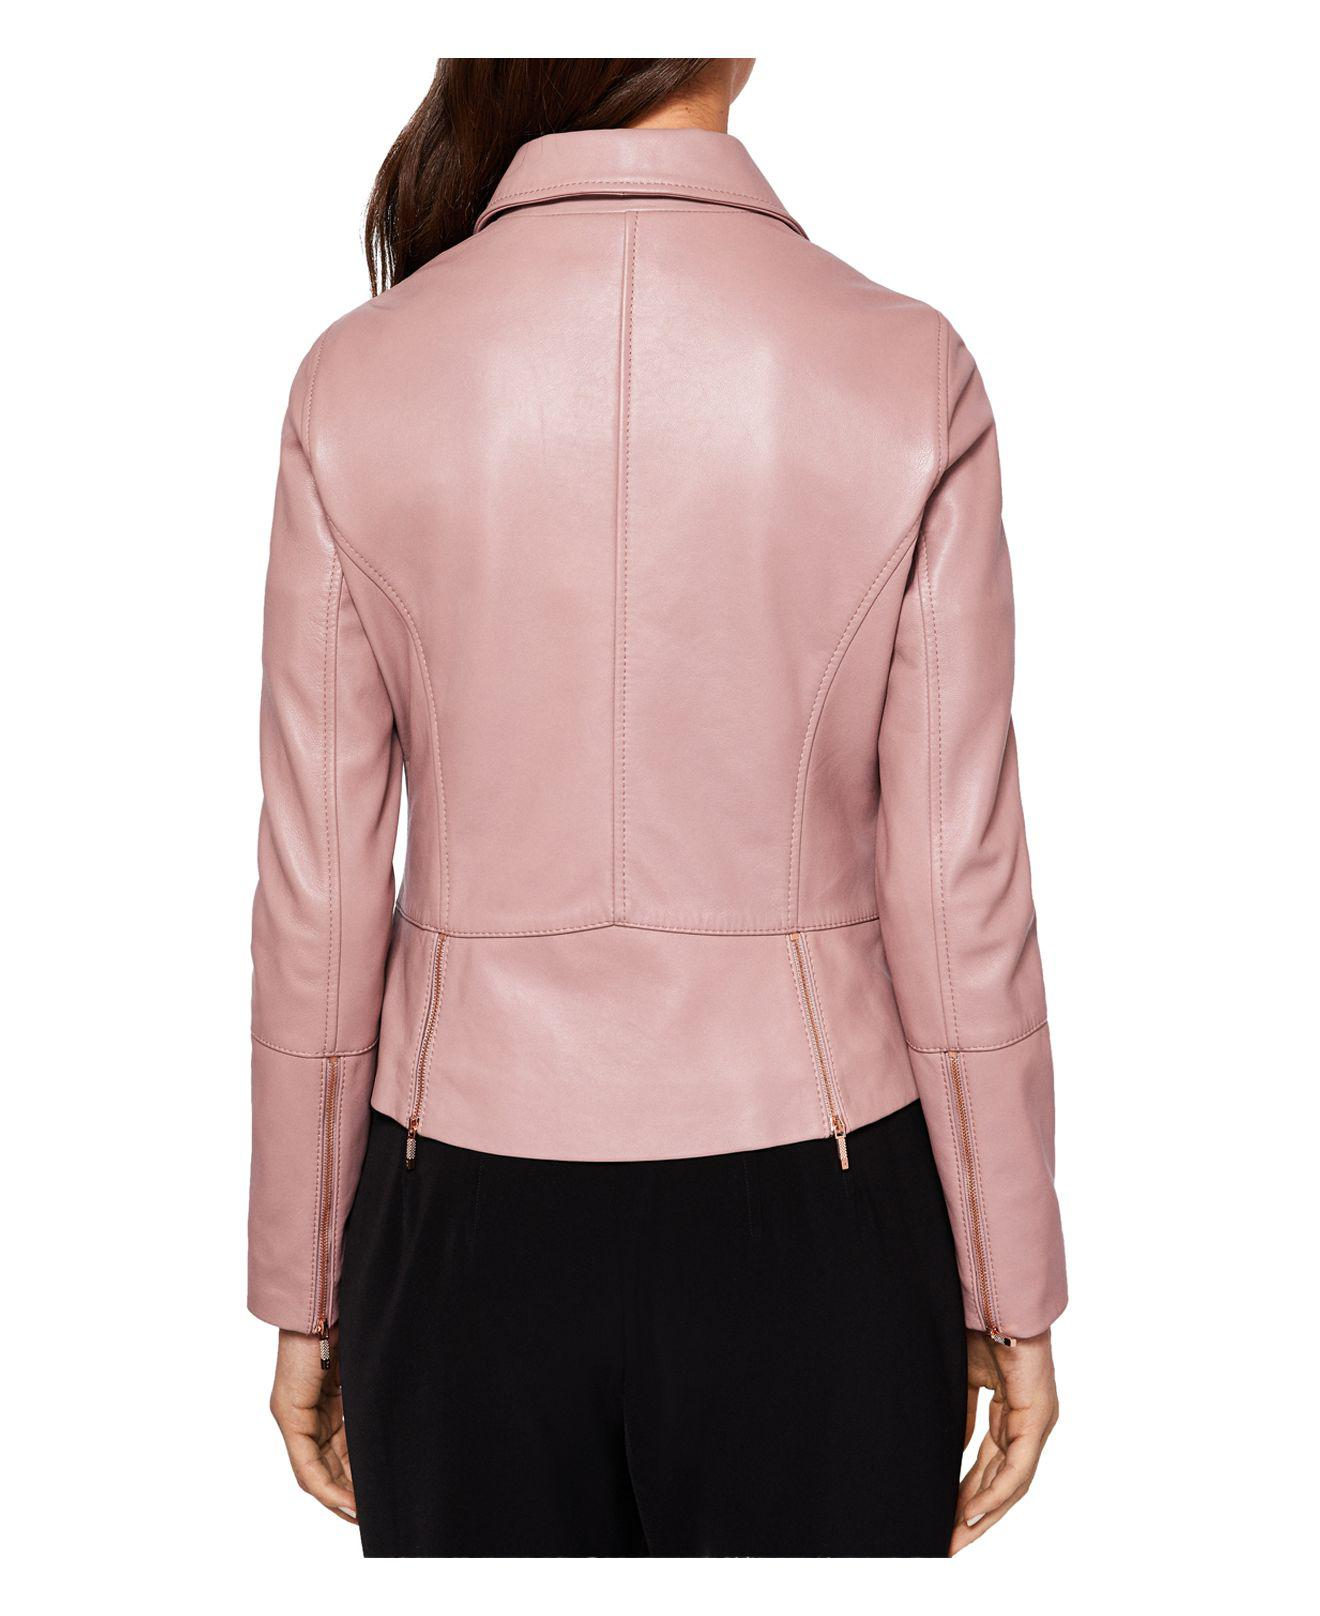 0564bcac131b Lyst - Ted Baker Lizia Leather Biker Jacket in Pink